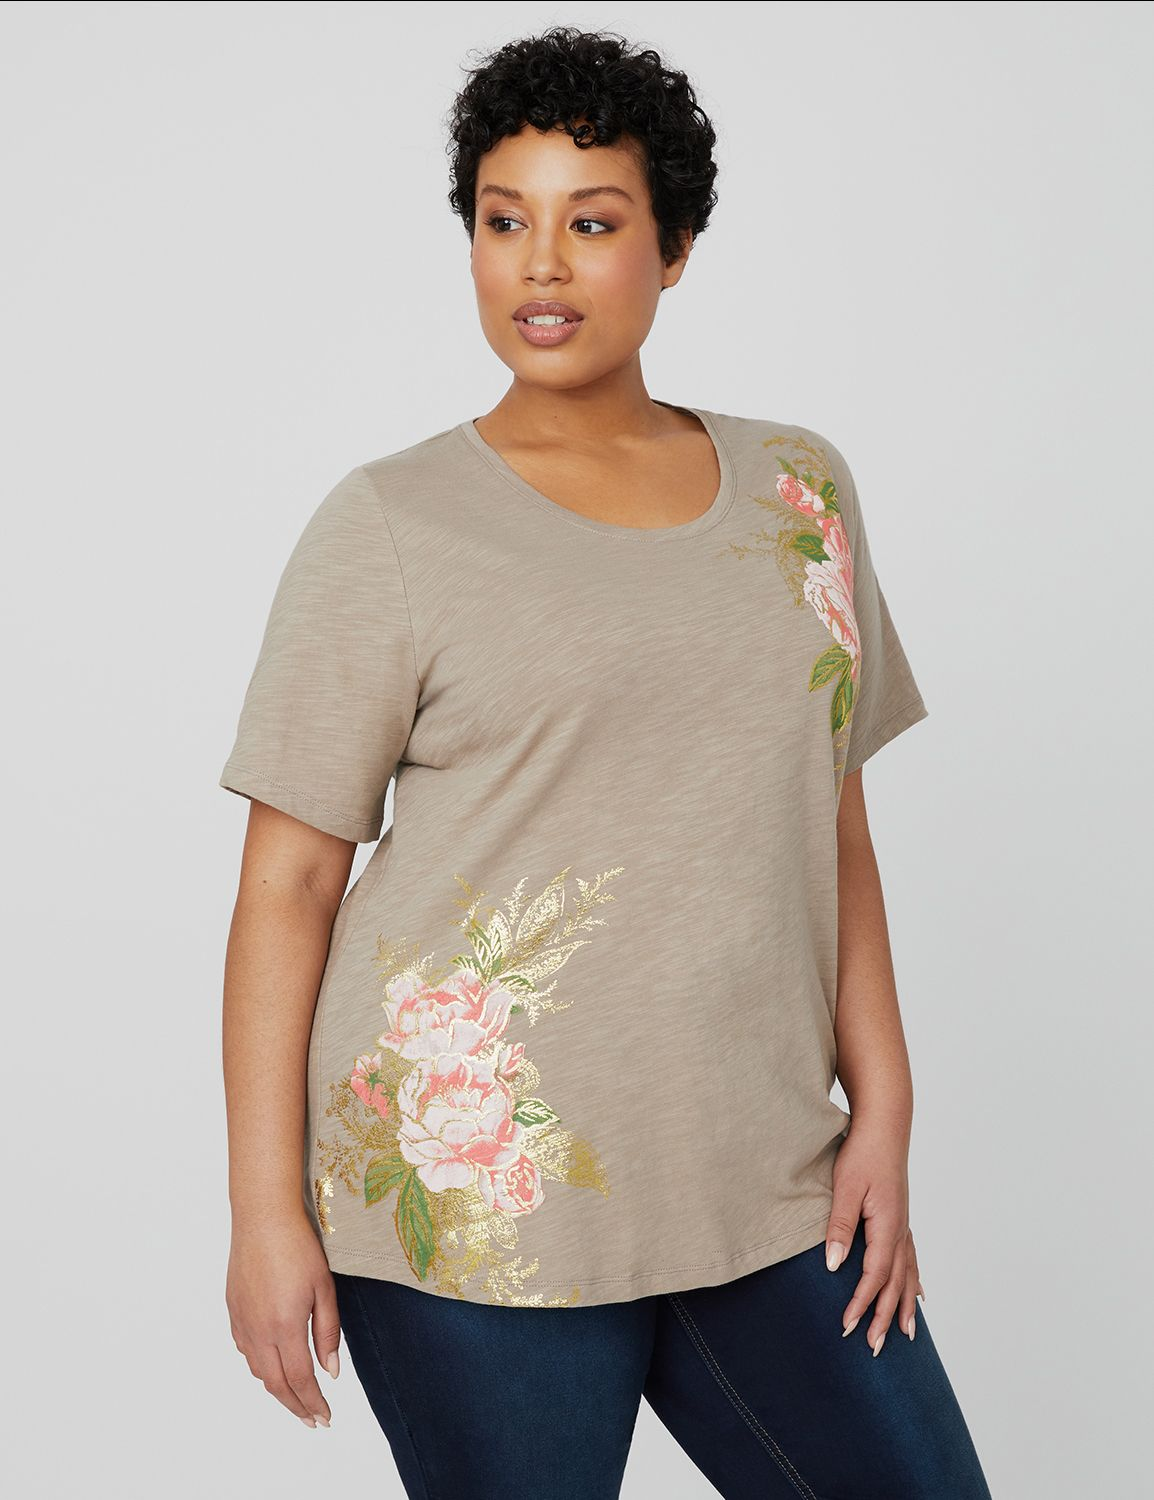 Tranquil Floral Tee 1088365 FLORAL SCREEN MP-300105248